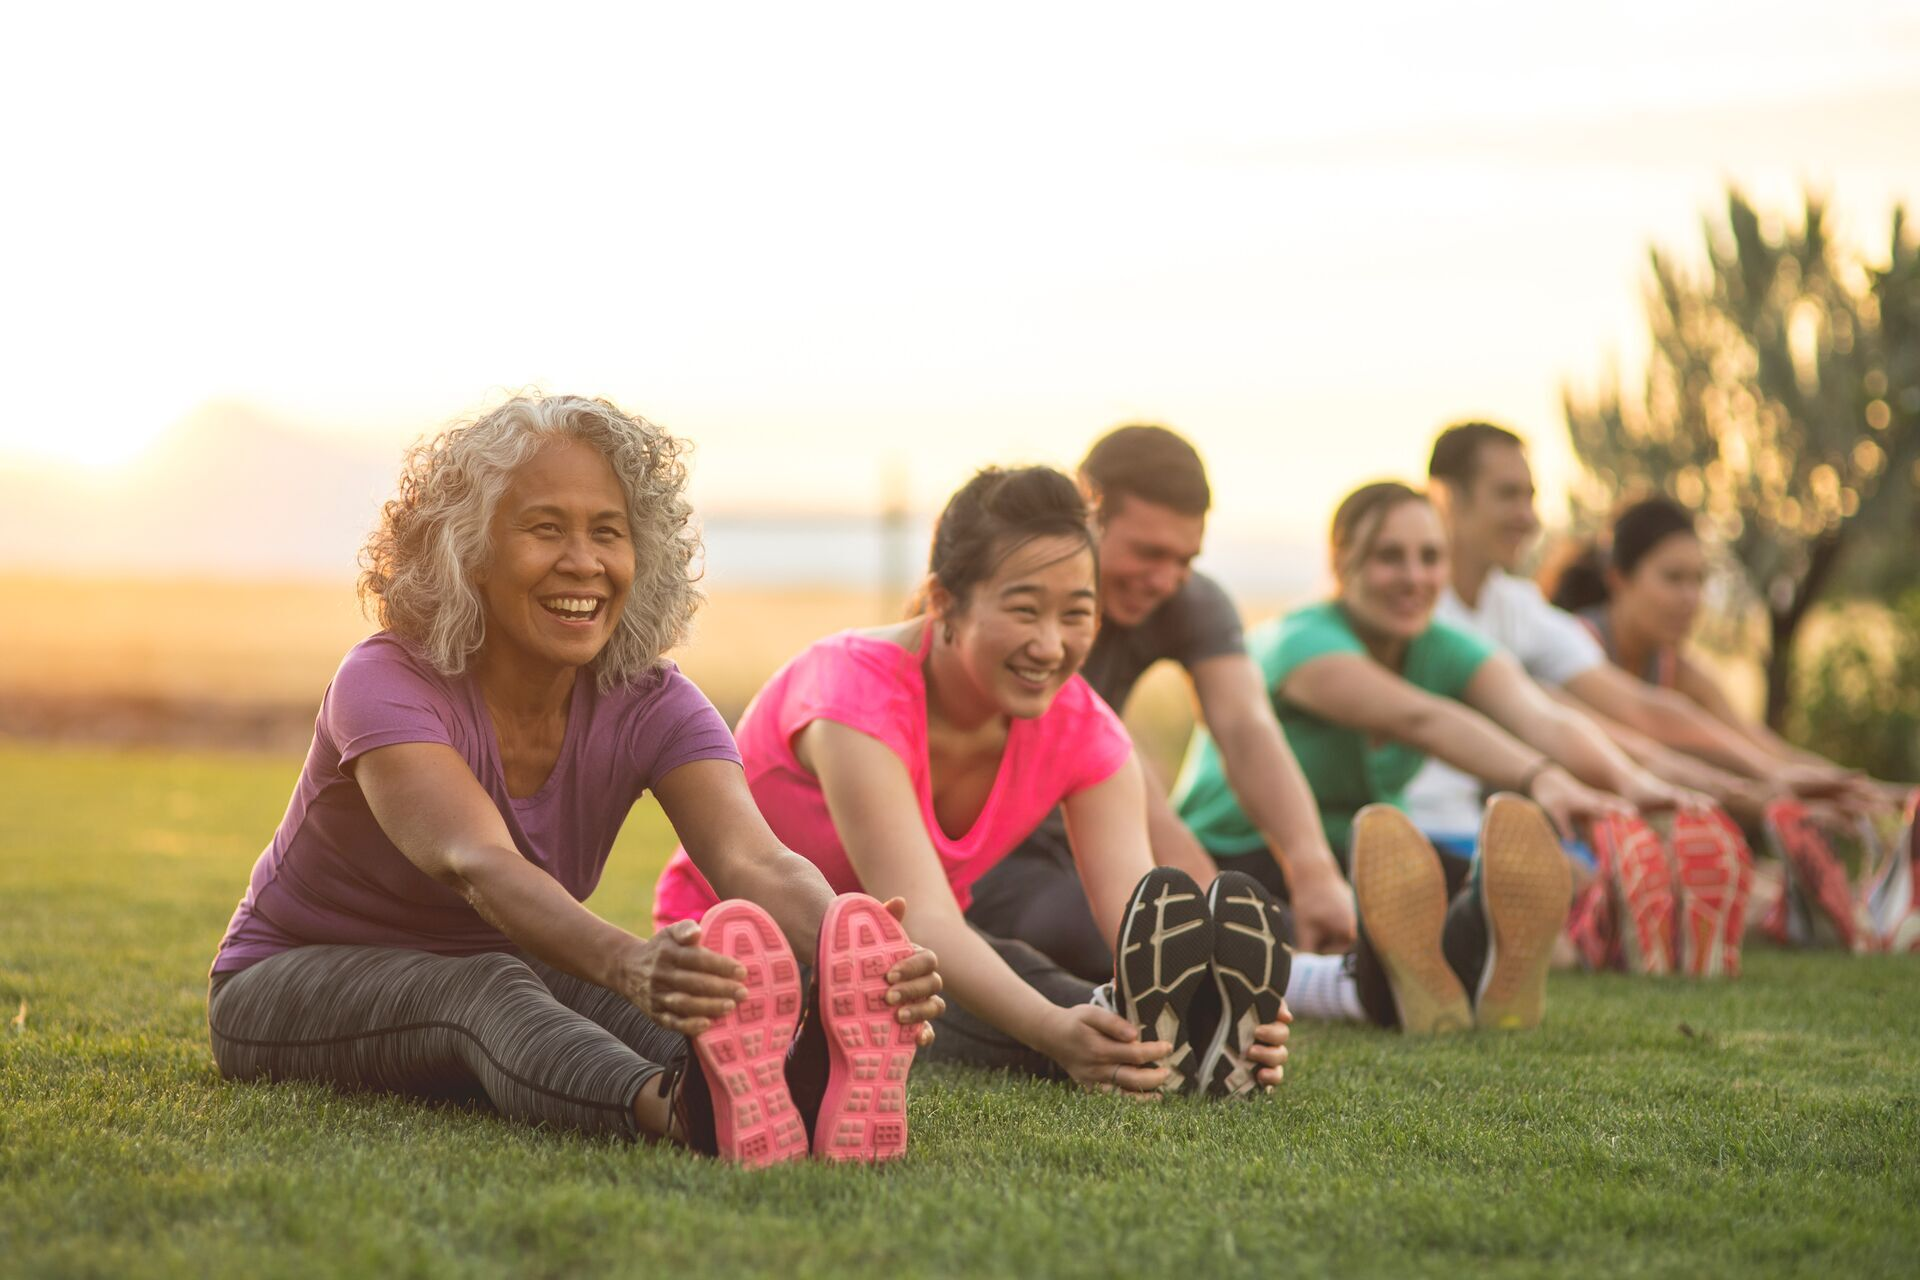 A group of adults attending a fitness class outdoors are doing leg stretches. The participants are arranged in a line. The focus is on a mature ethnic woman who is smiling toward the camera.